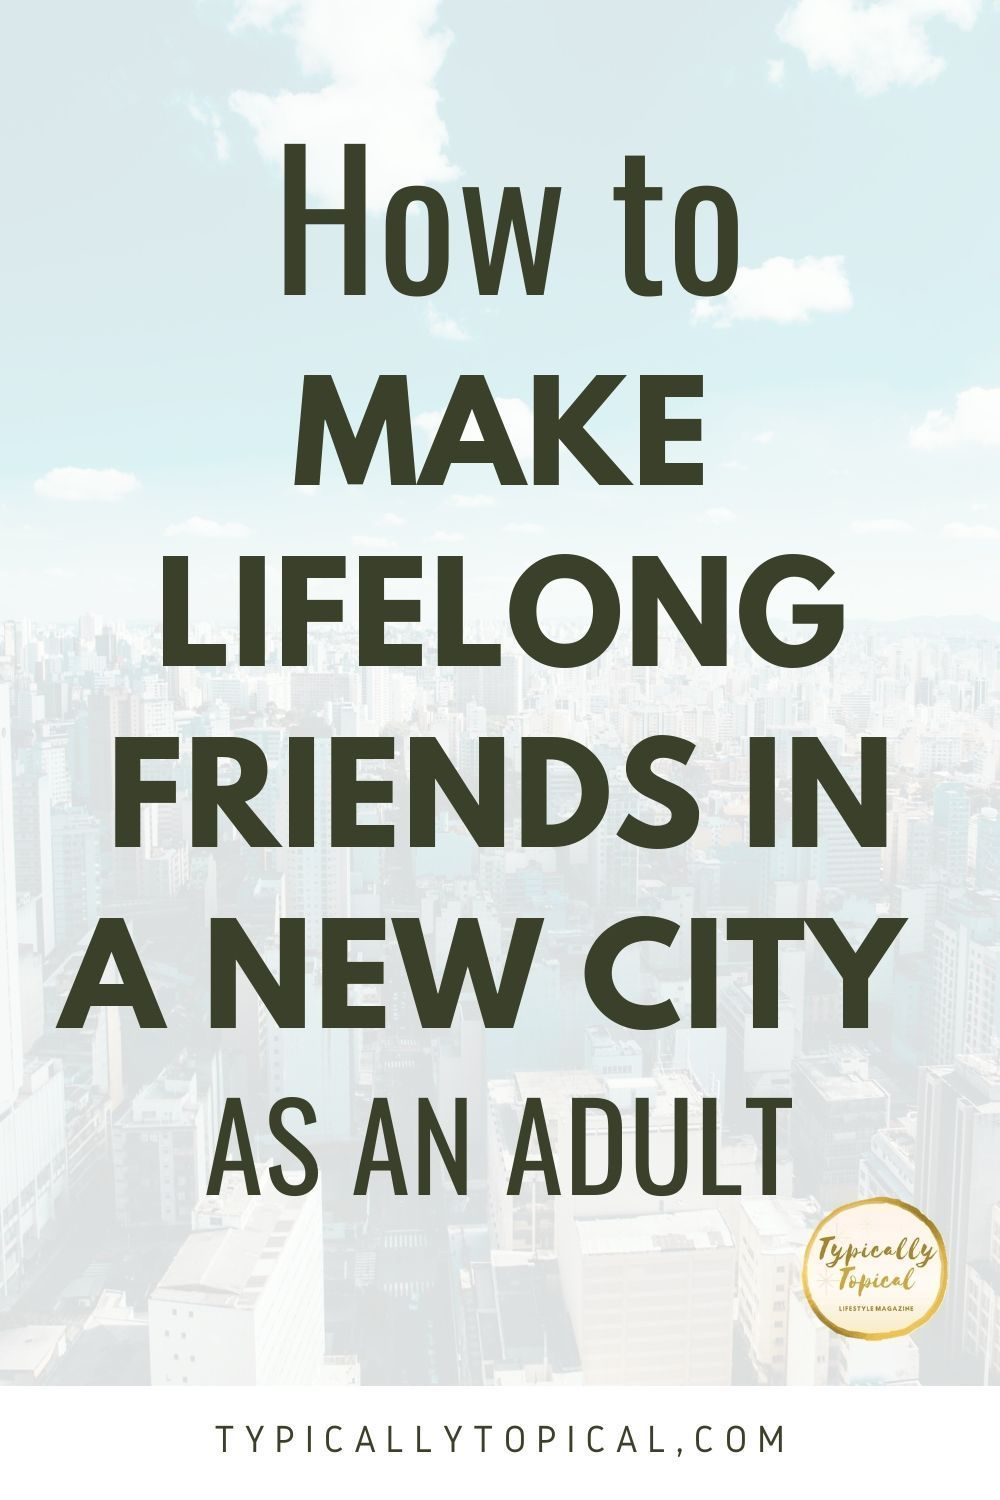 3 Simple Steps How to Make Friends in a New City